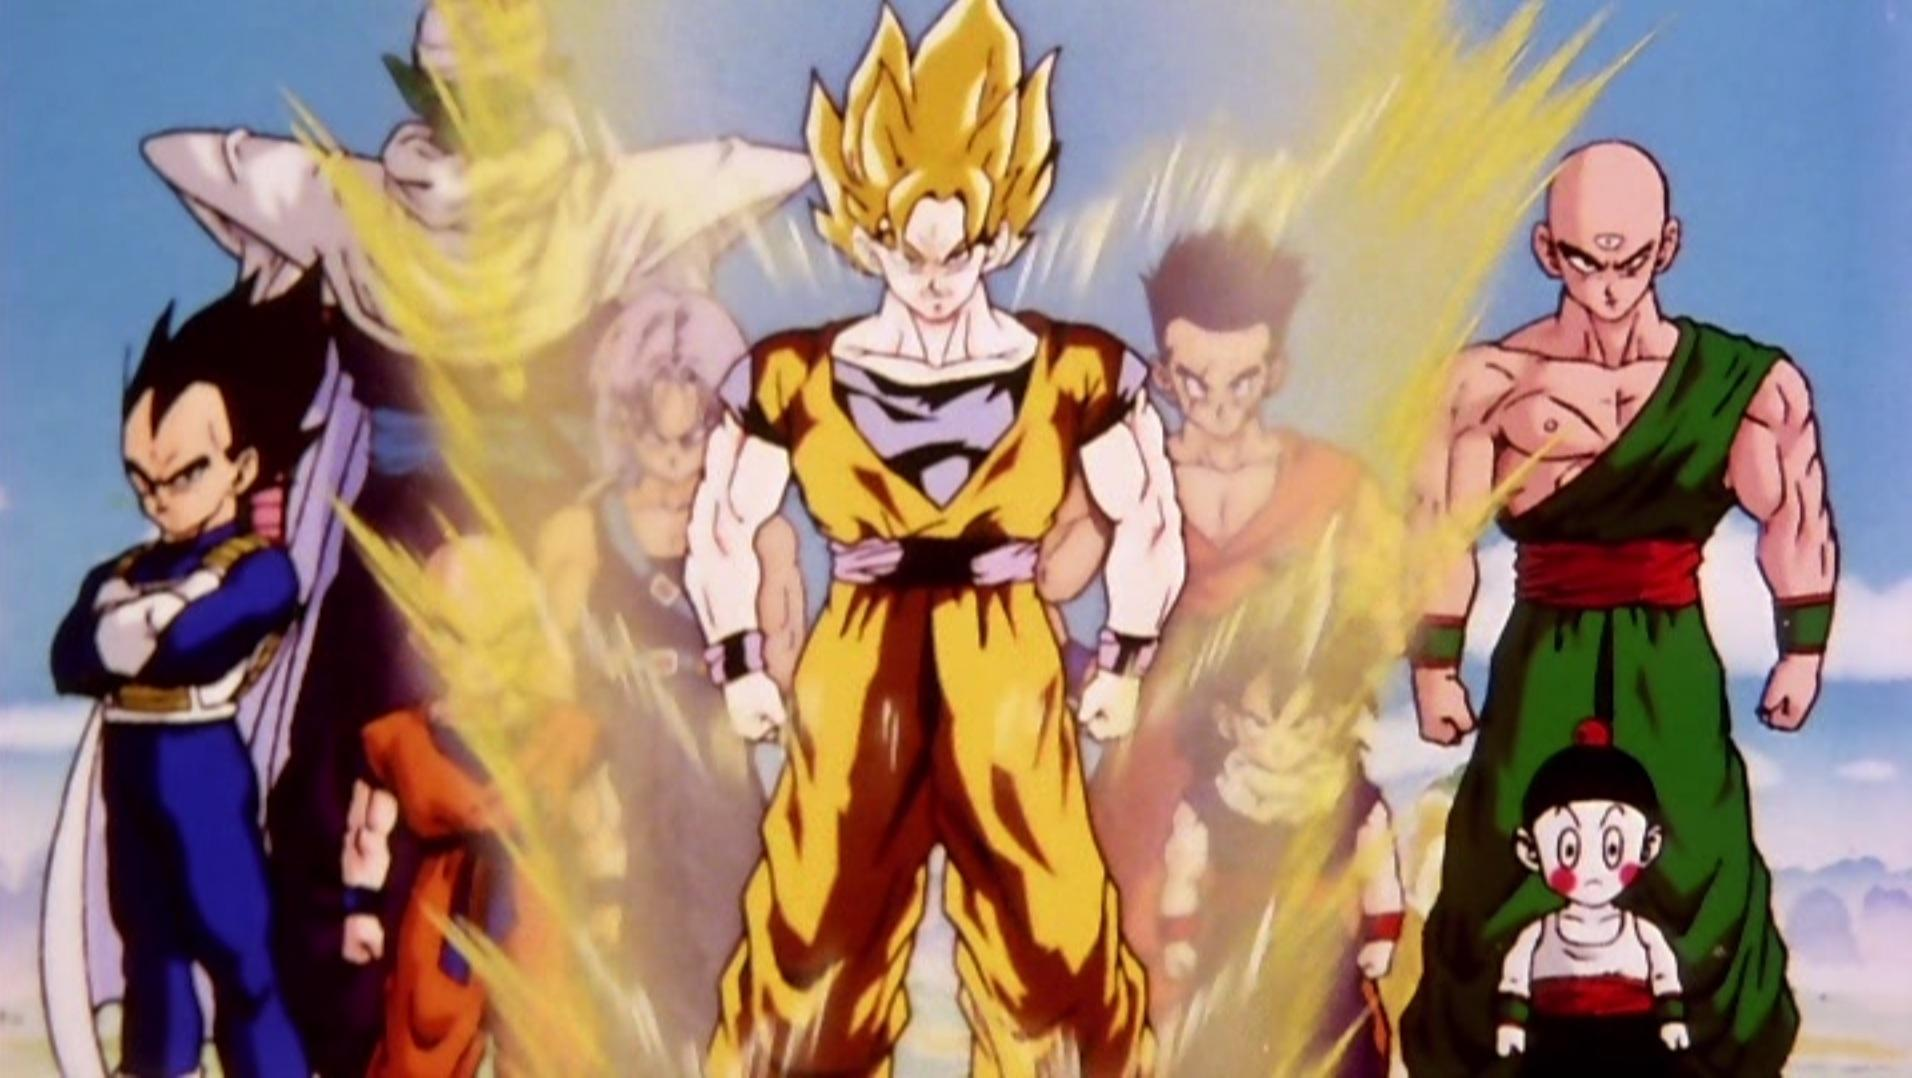 complete-episode-guide-for-the-first-season-of-the-dragon-ball-z-anime